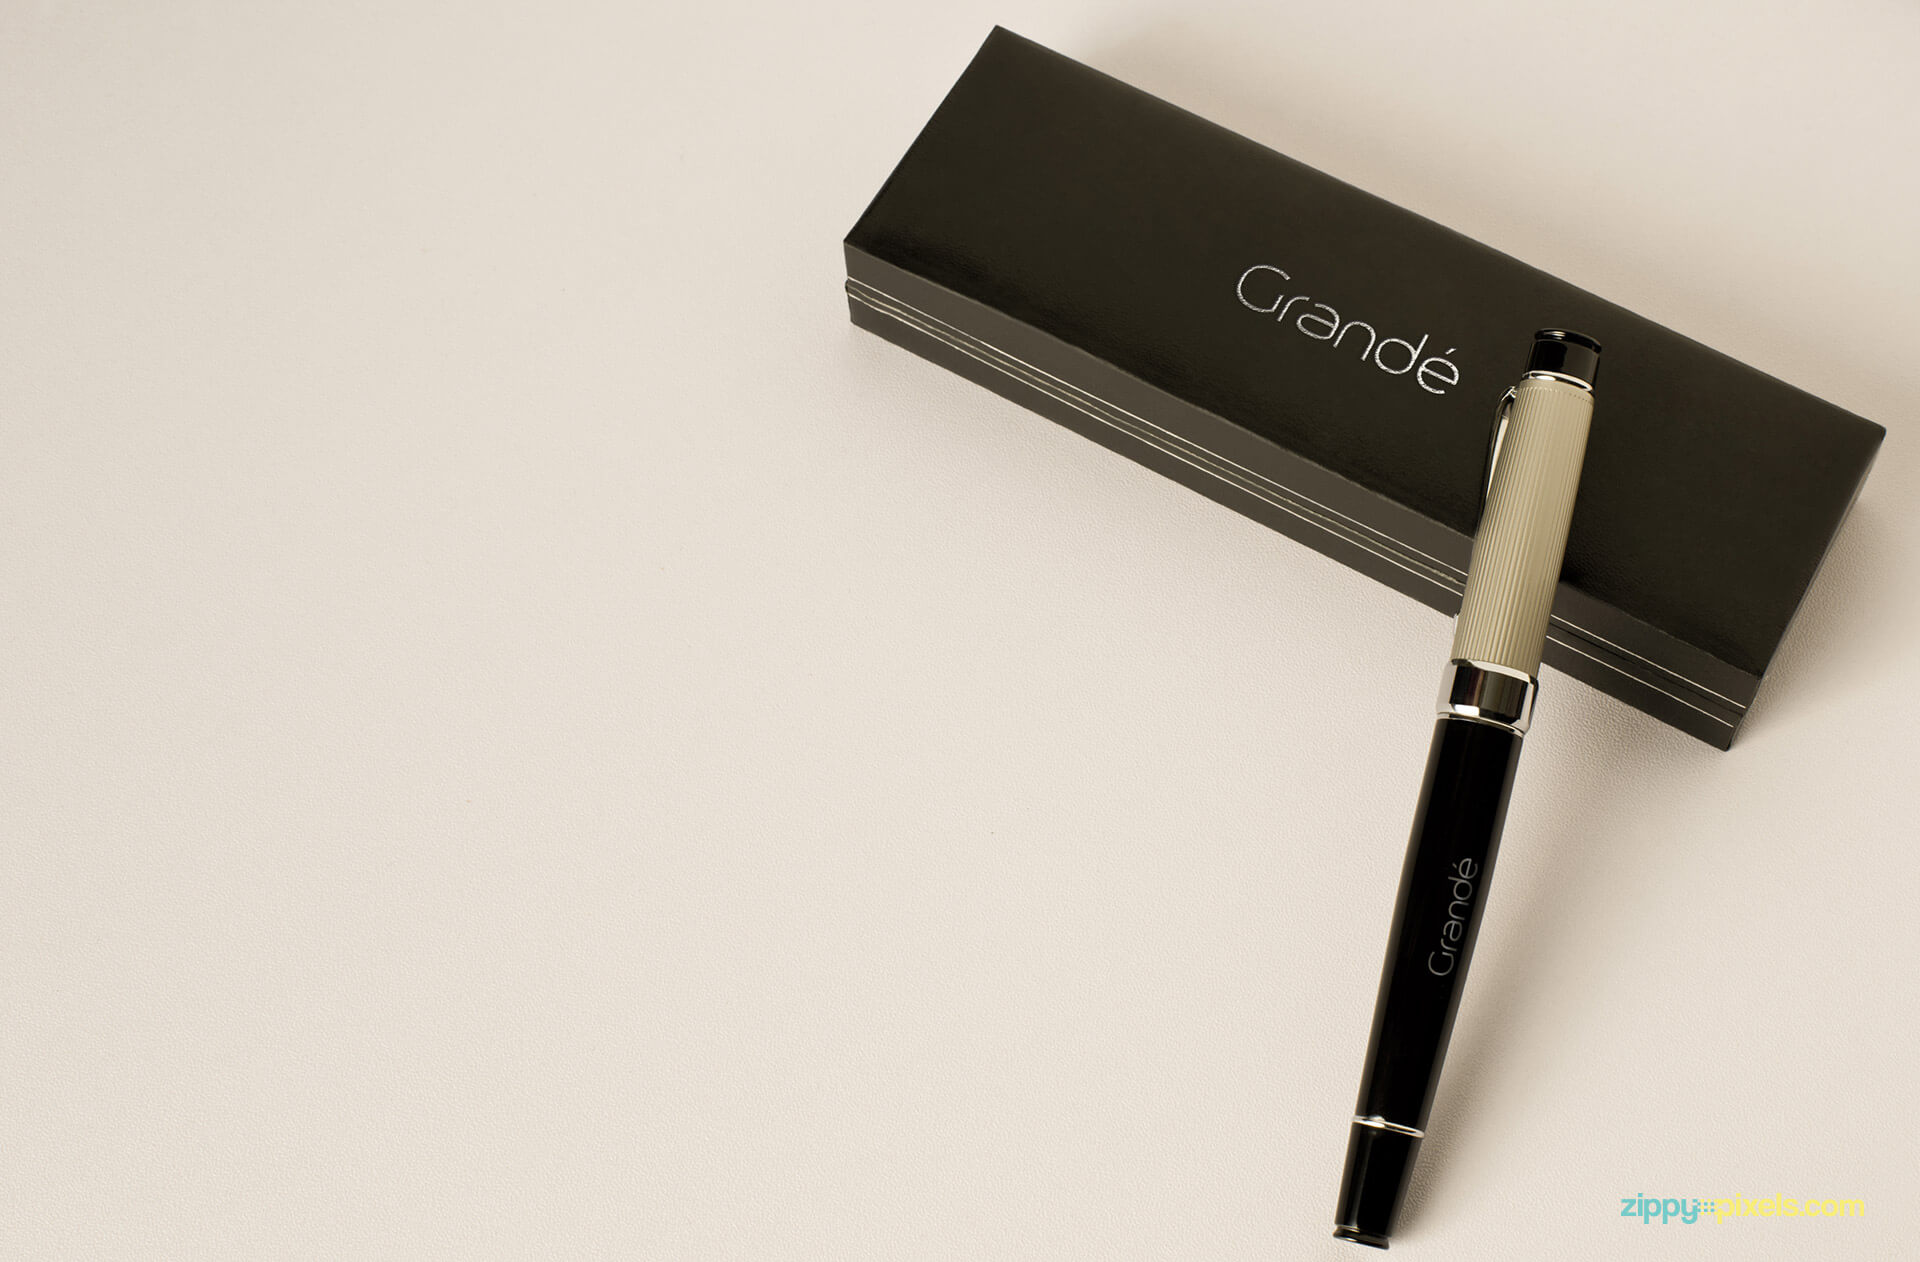 Corporate Identity Mockup of an Executive Pen with Branded Pen Box